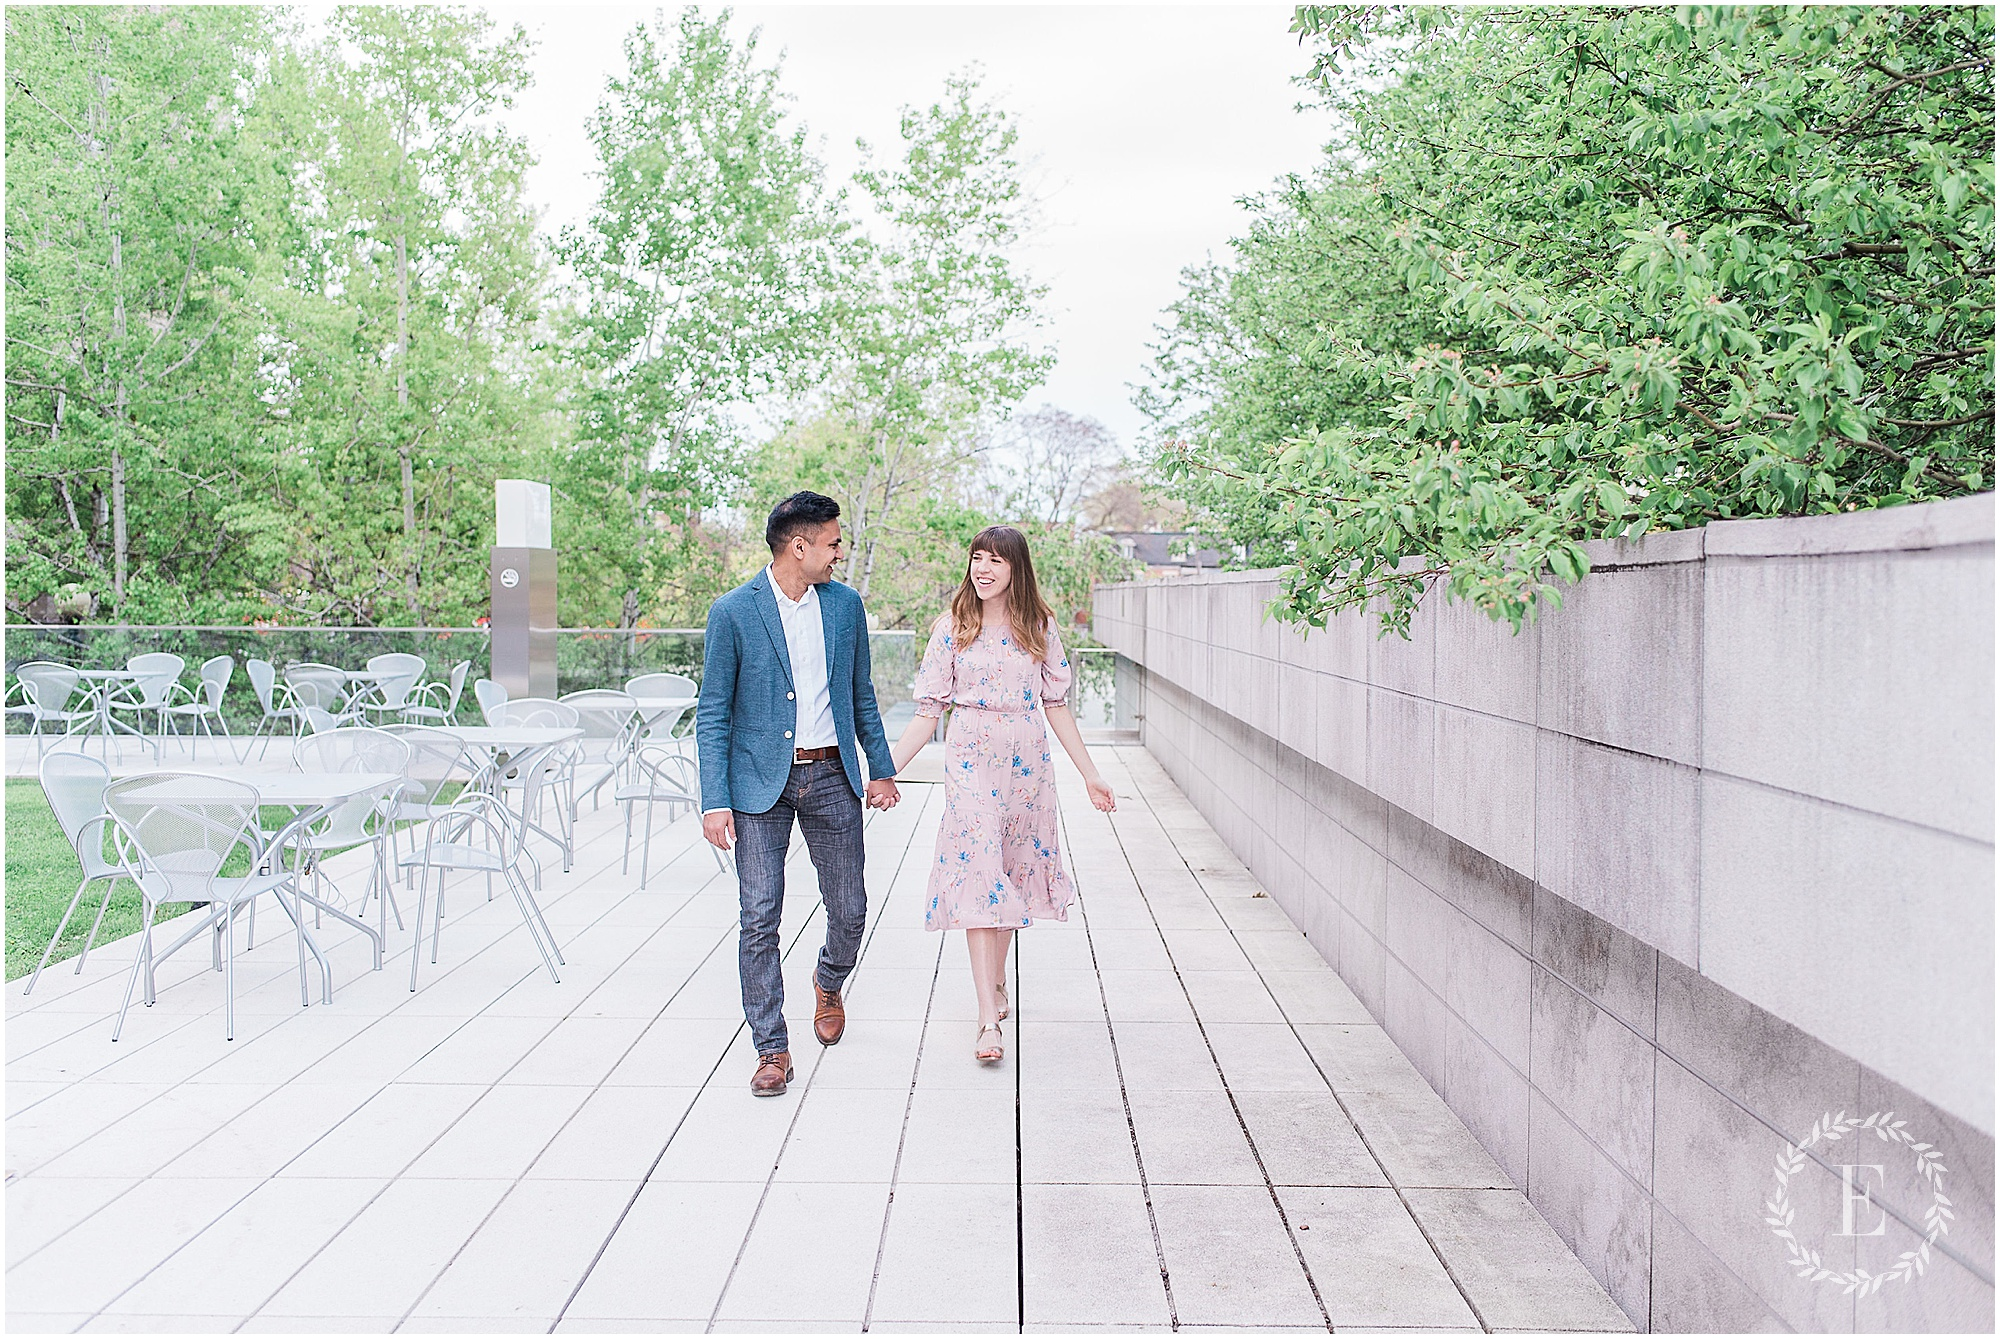 18_Cait_and_Saaqib_Engagement_at_the_Museum_of_Nature_and_Ornamental_Gardens___Photography_by_Emma.jpg